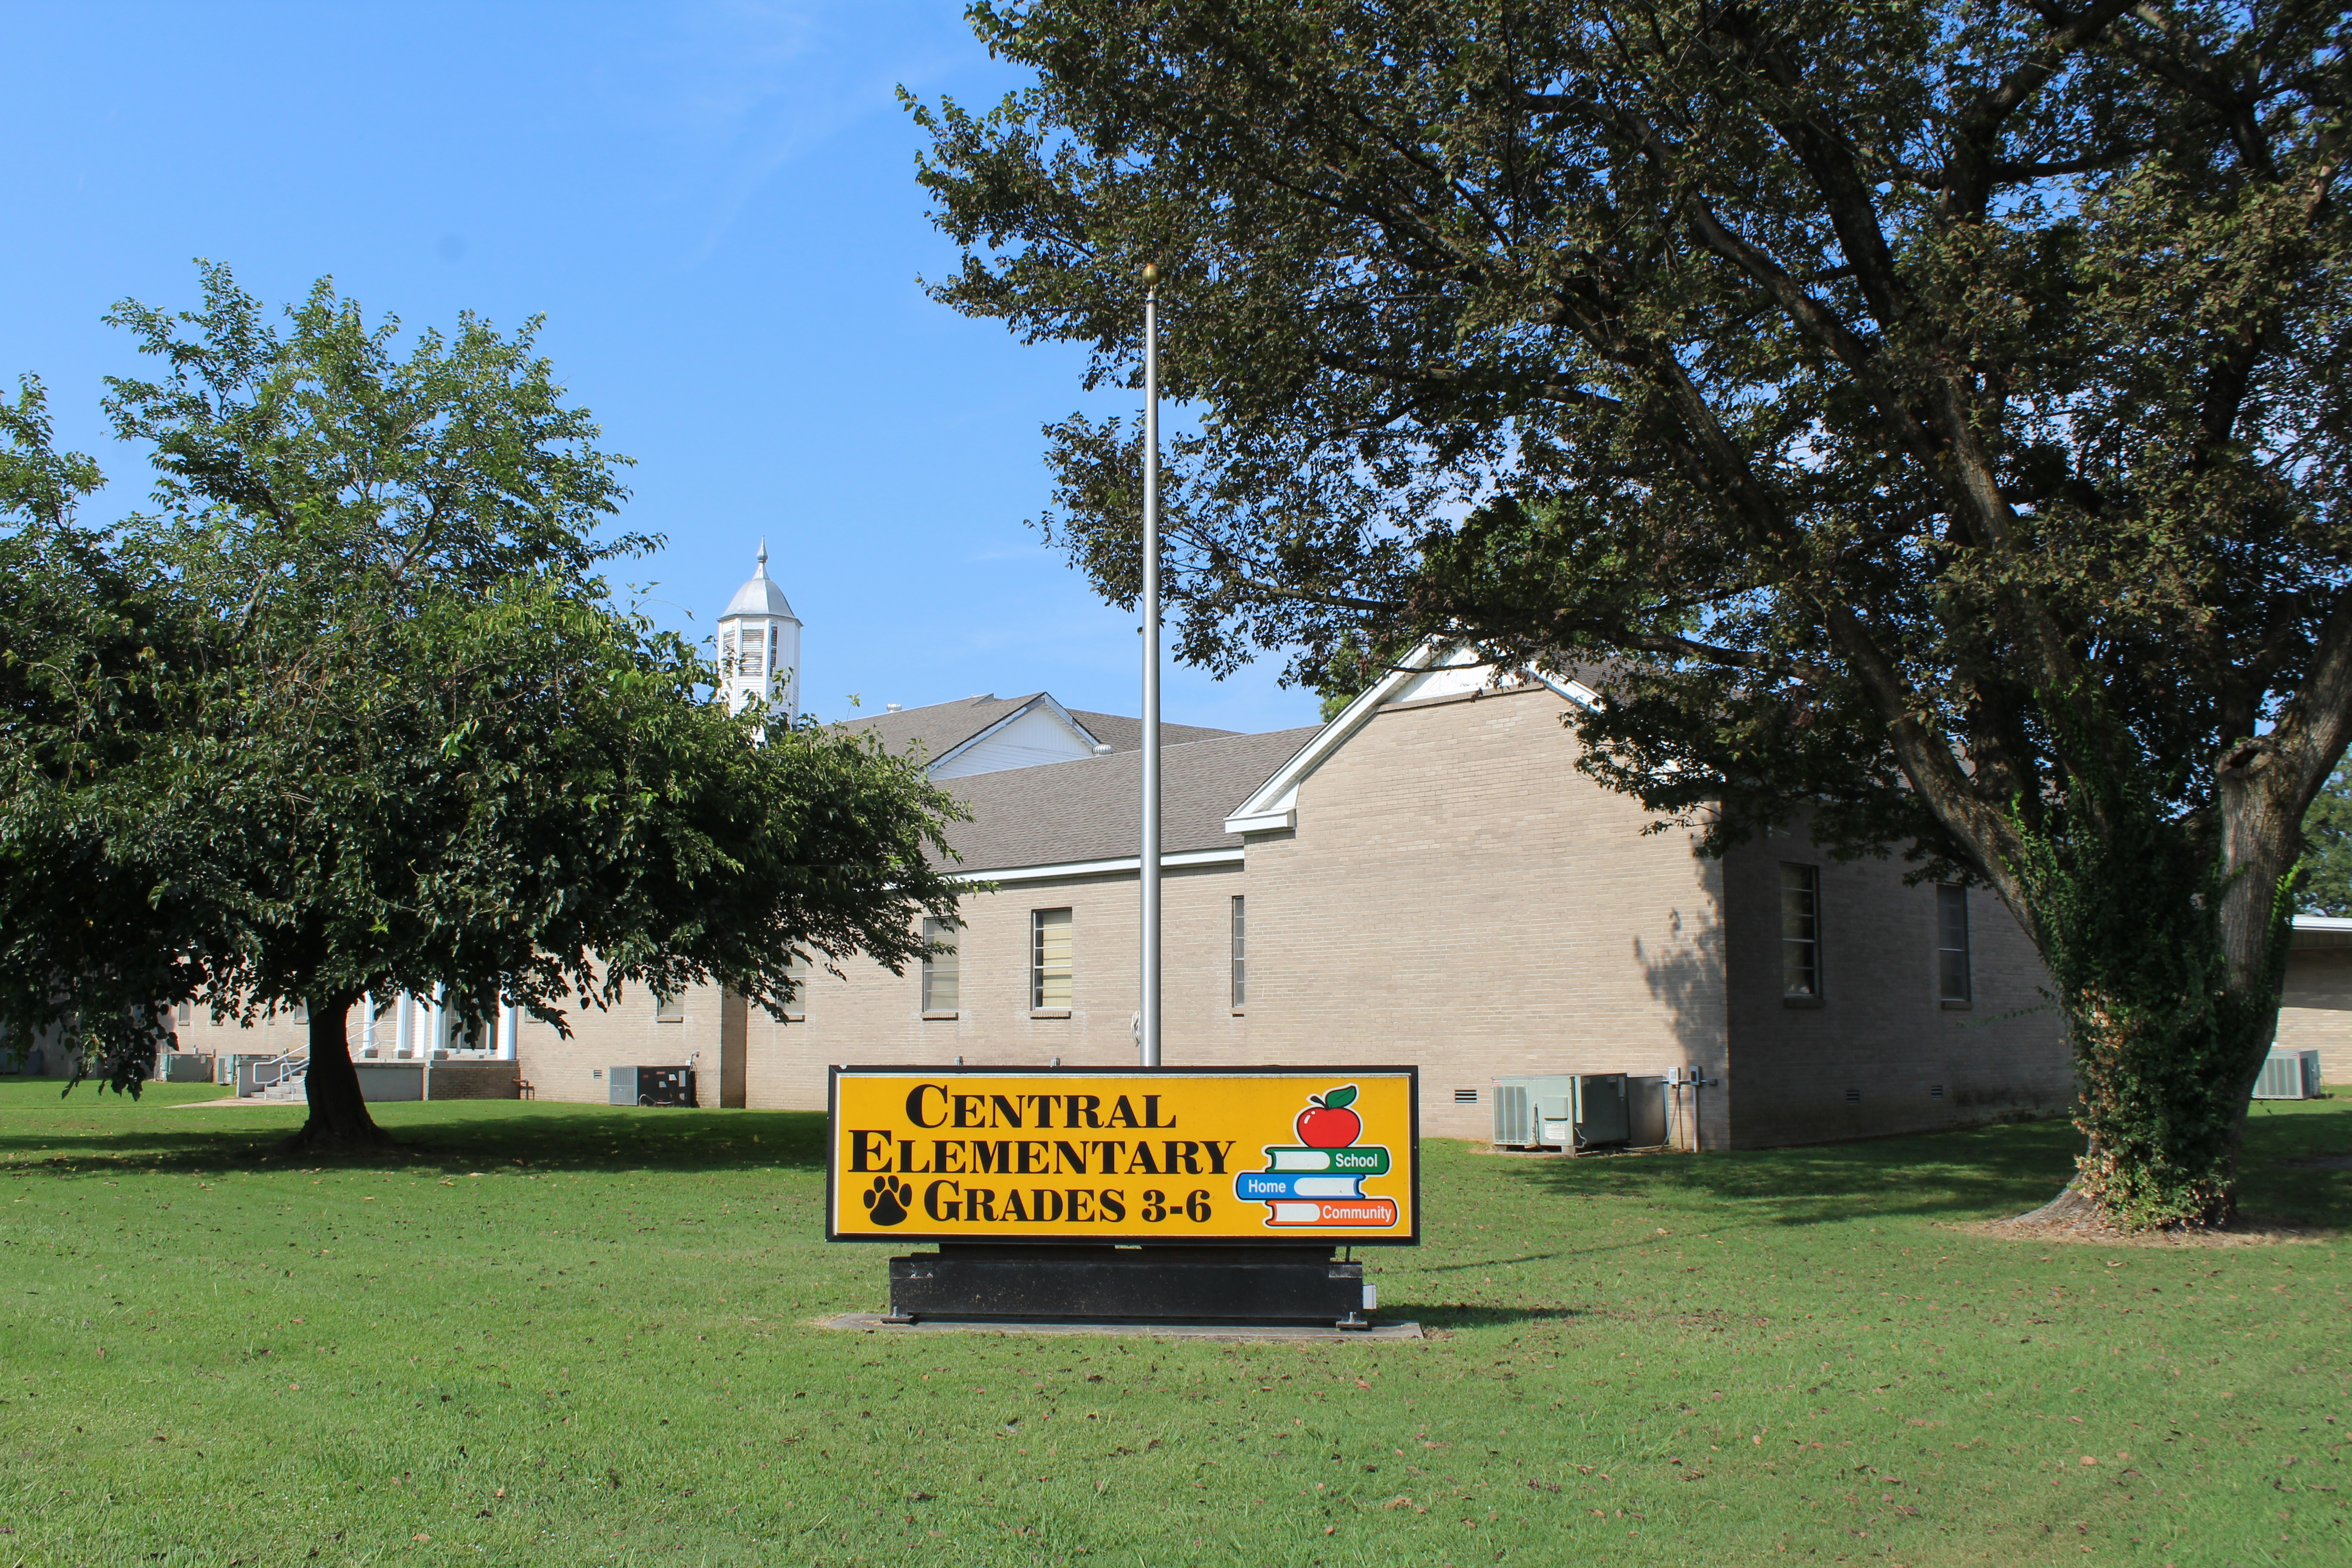 Central Elementary School sign in 2019